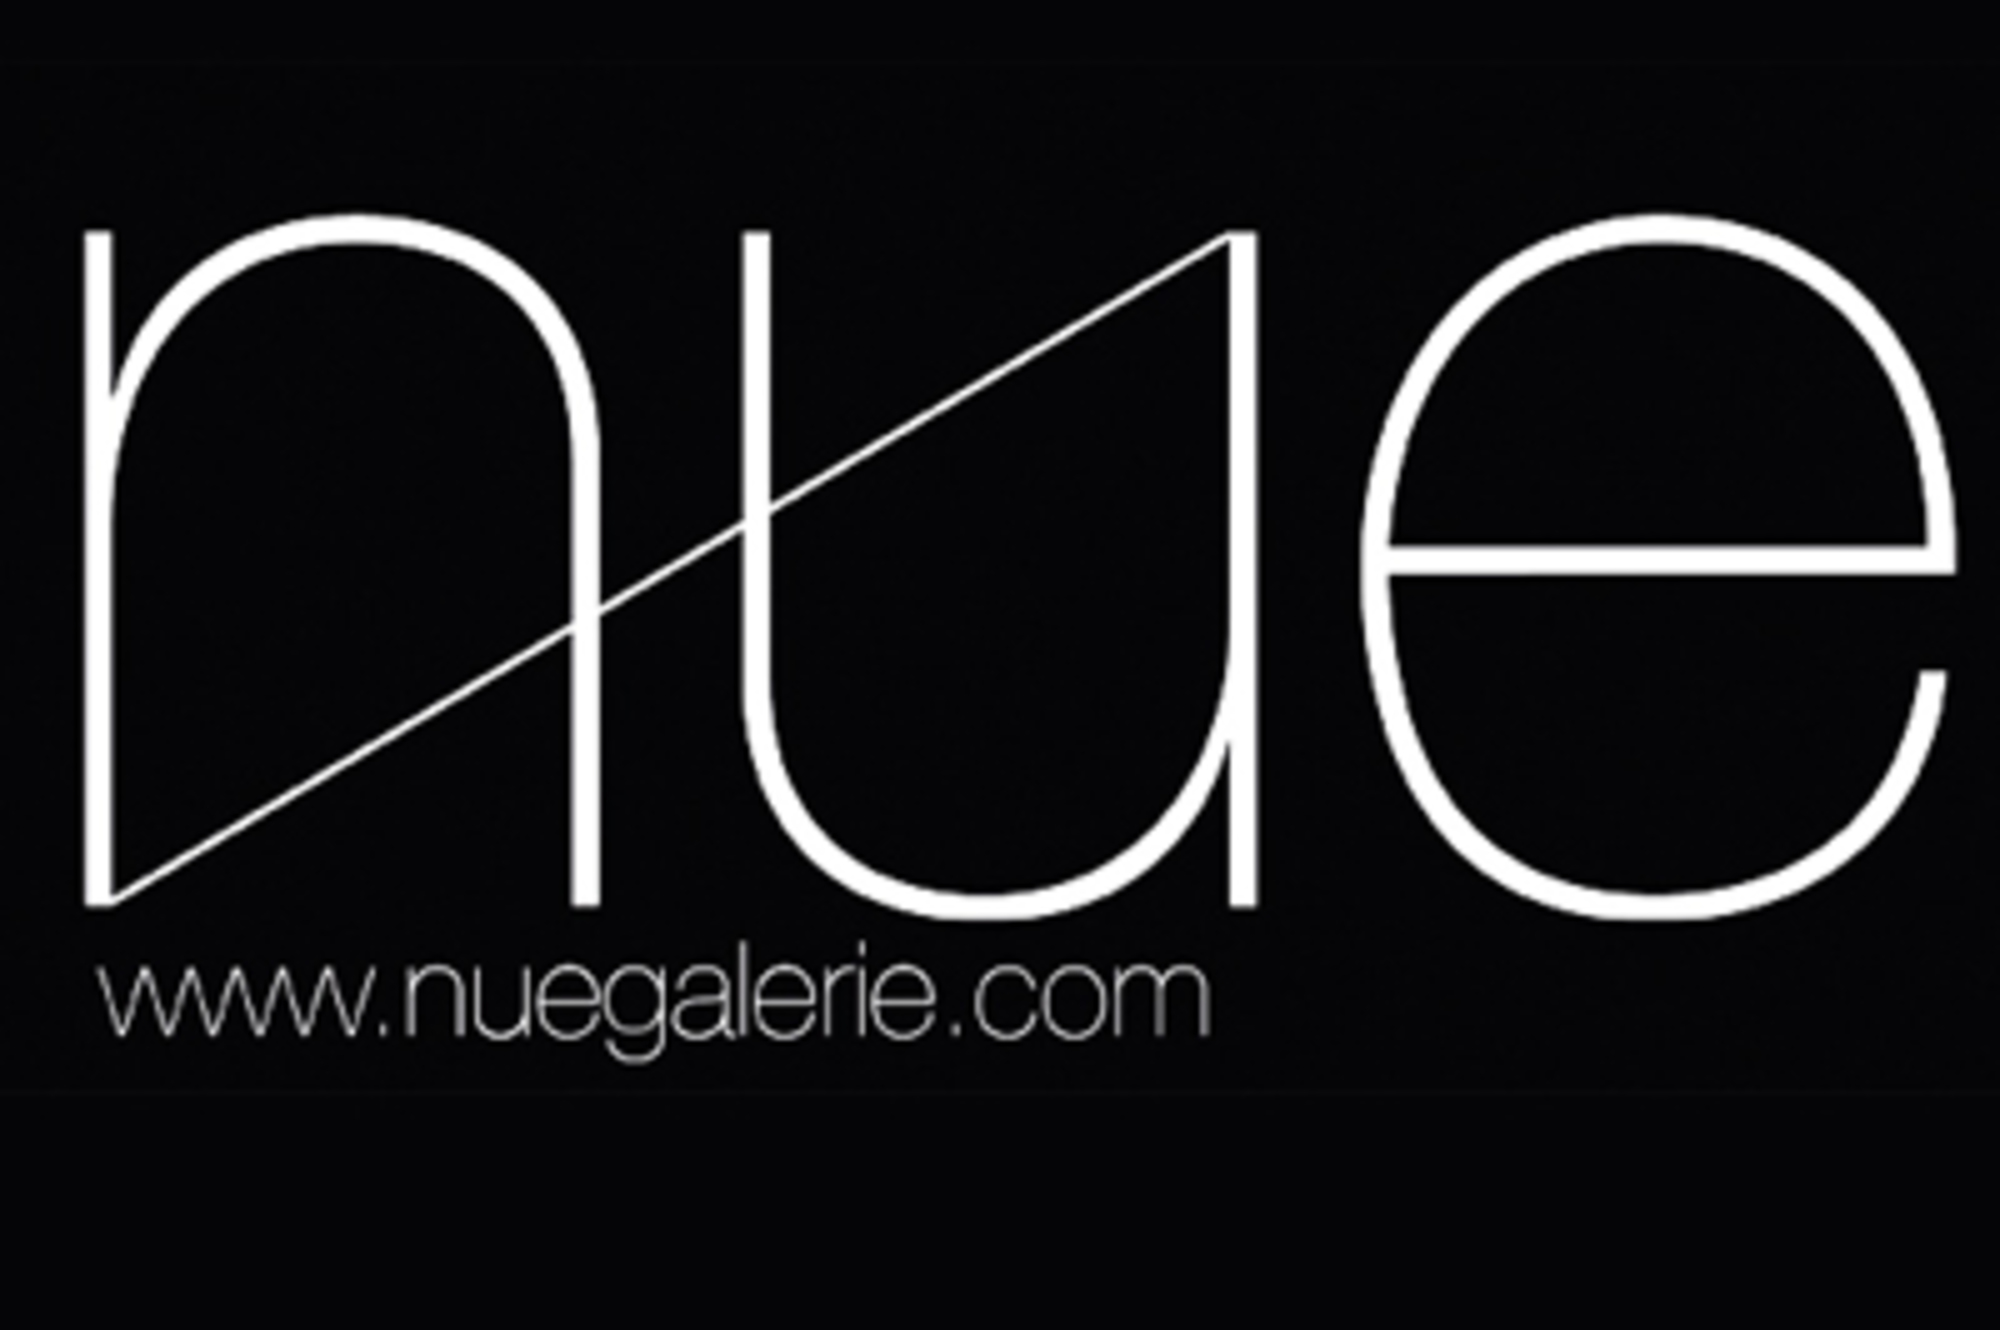 Galerie Photo Nue >> Nue Galerie Artists Art For Sale And Contact Info Artsy